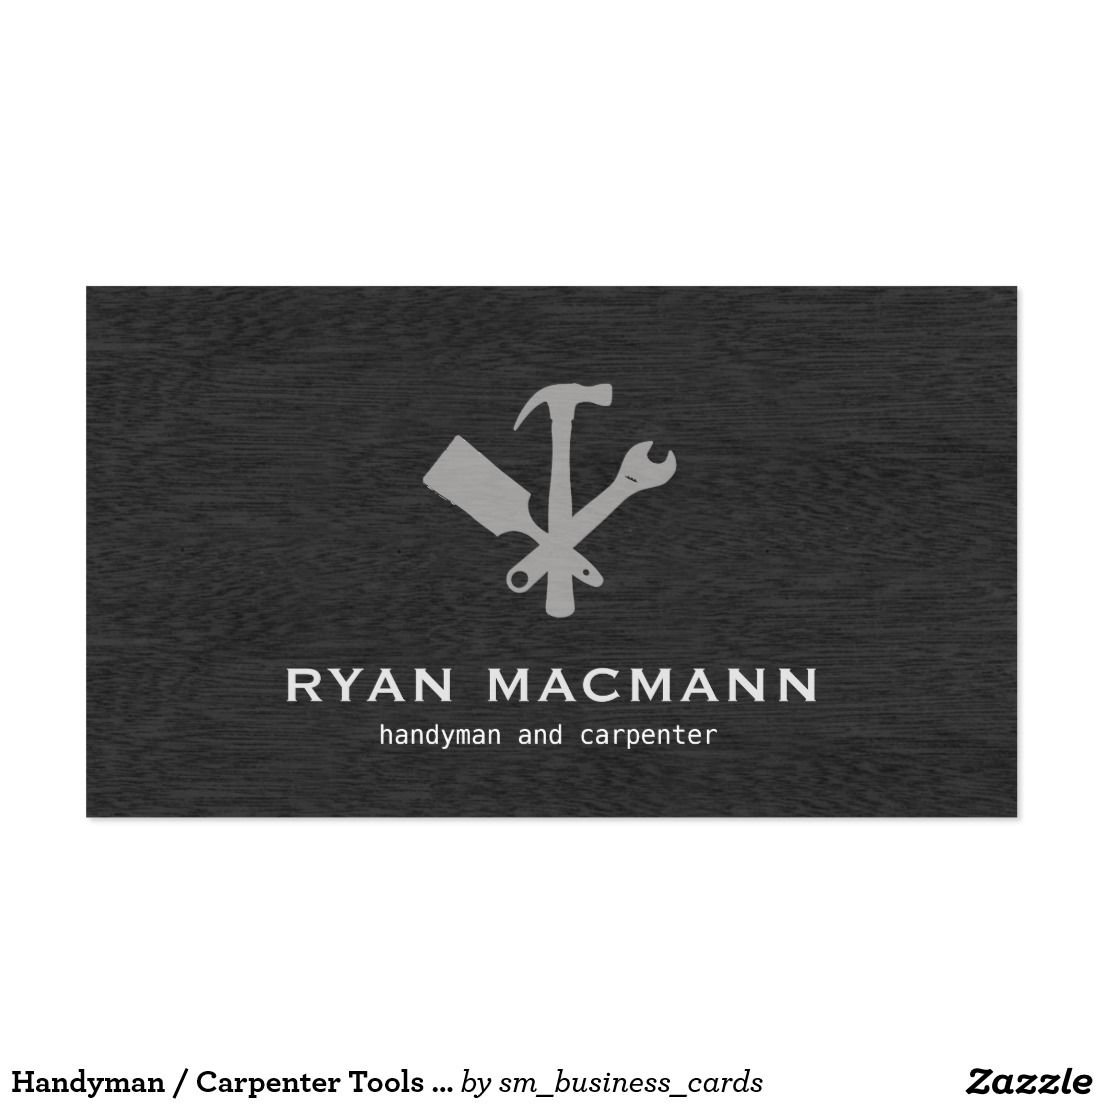 Handyman carpenter tools home improvement business card handyman carpenter tools home improvement business card reheart Image collections